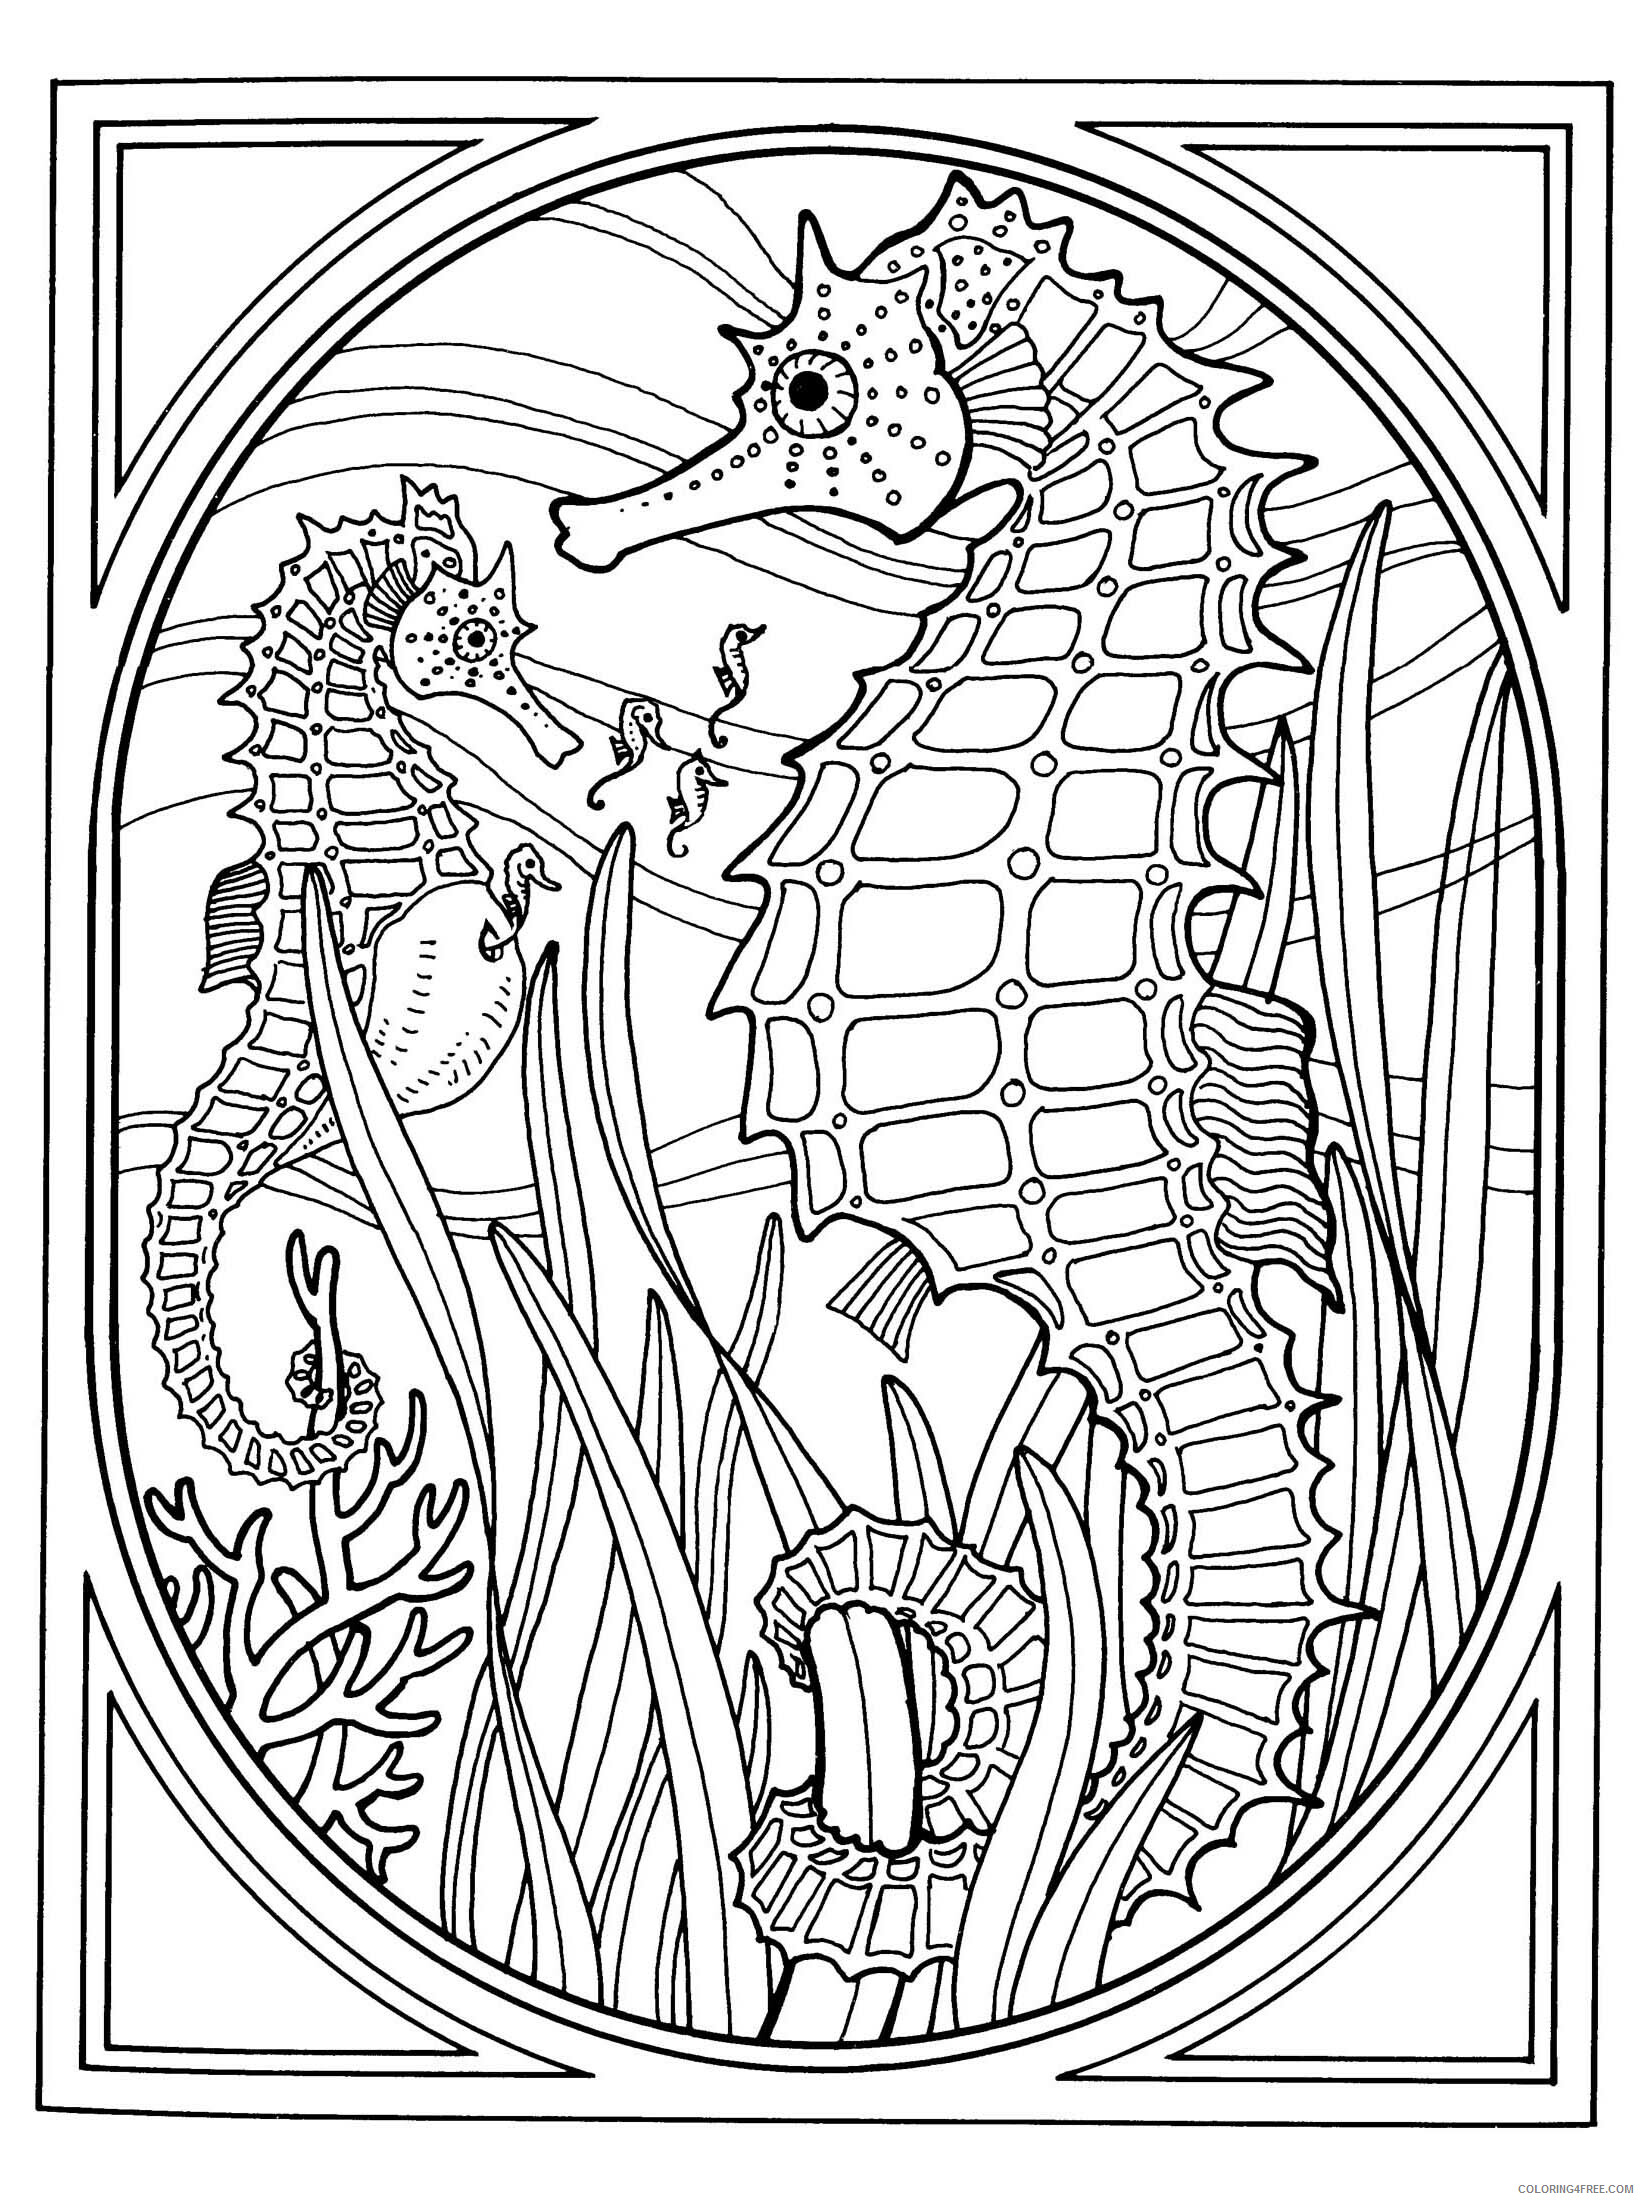 Adult Animals Coloring Pages Seahorse for Adults Printable 2020 170 Coloring4free